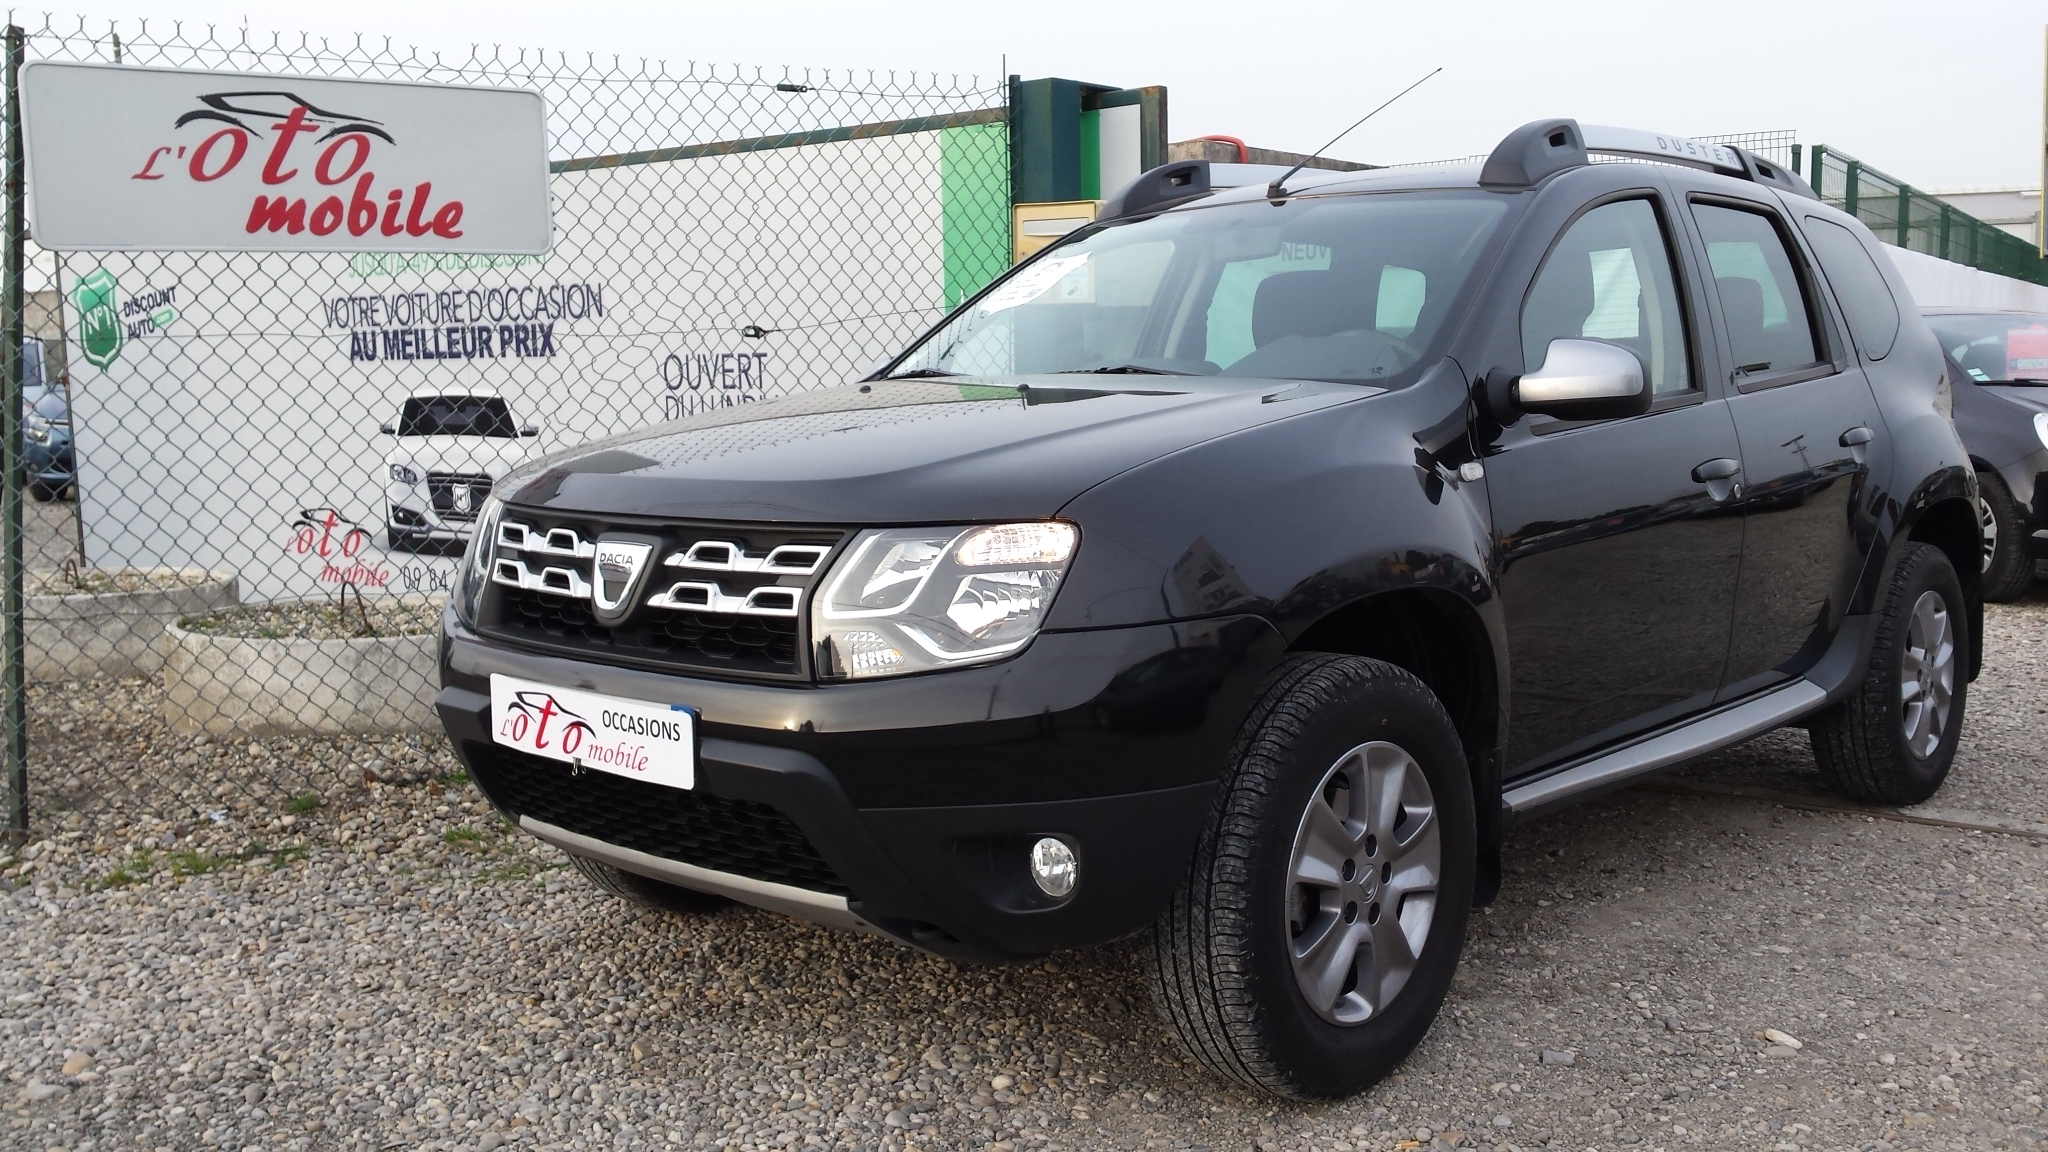 voiture dacia duster prestige 1 5 dci 110 4x4 gps occasion diesel 2014 50500 km 14700. Black Bedroom Furniture Sets. Home Design Ideas